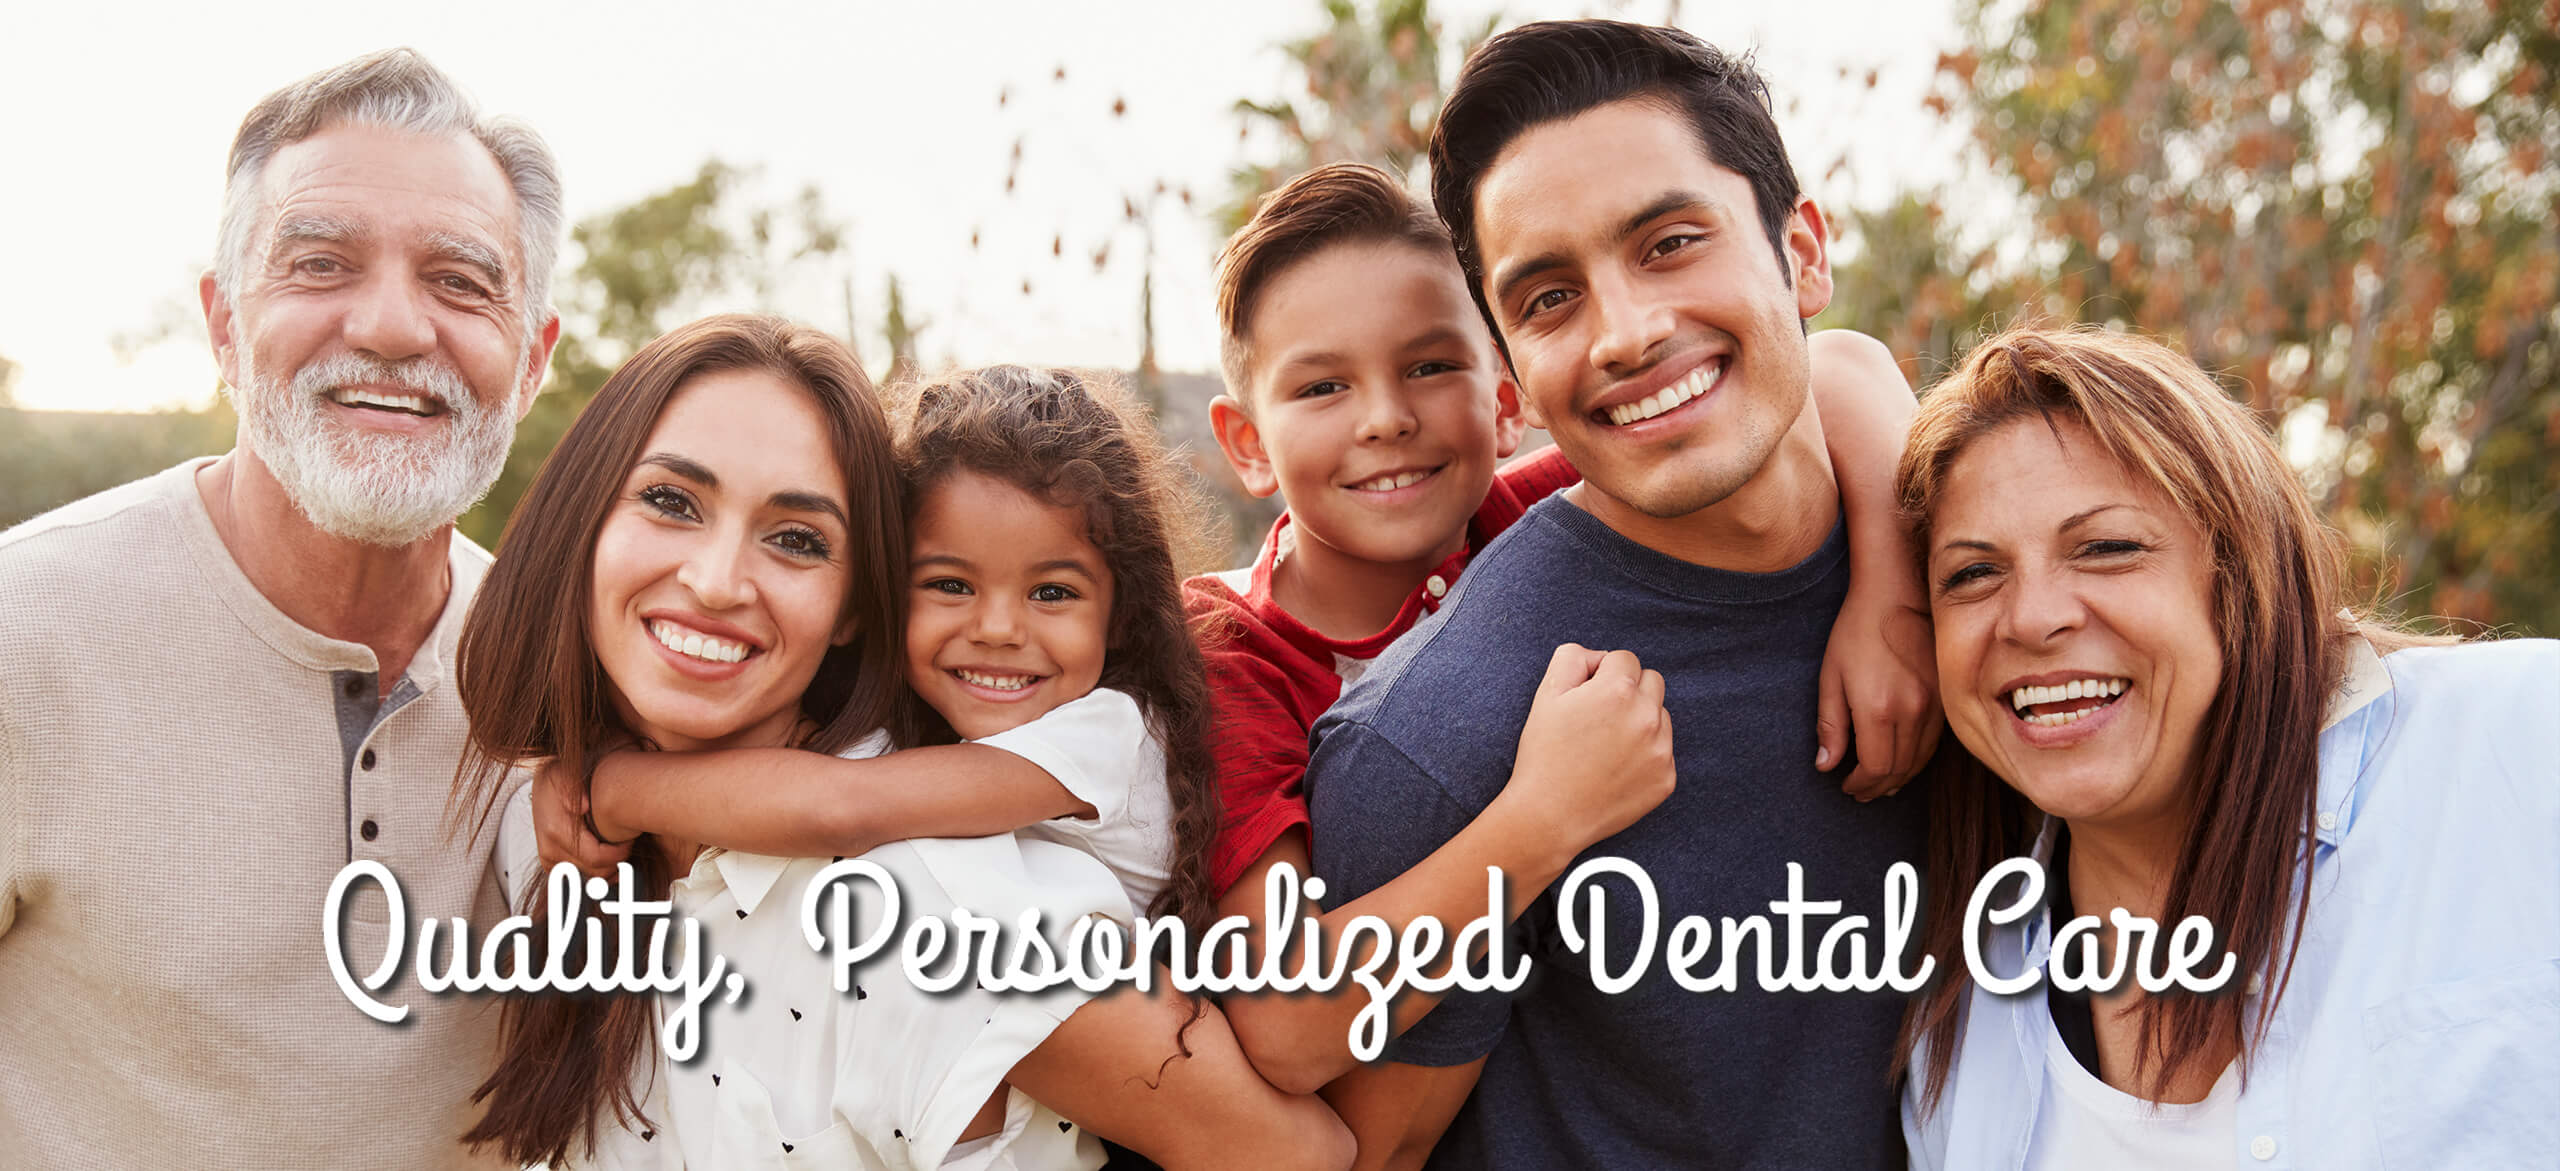 Quality, Personalized Dental Care